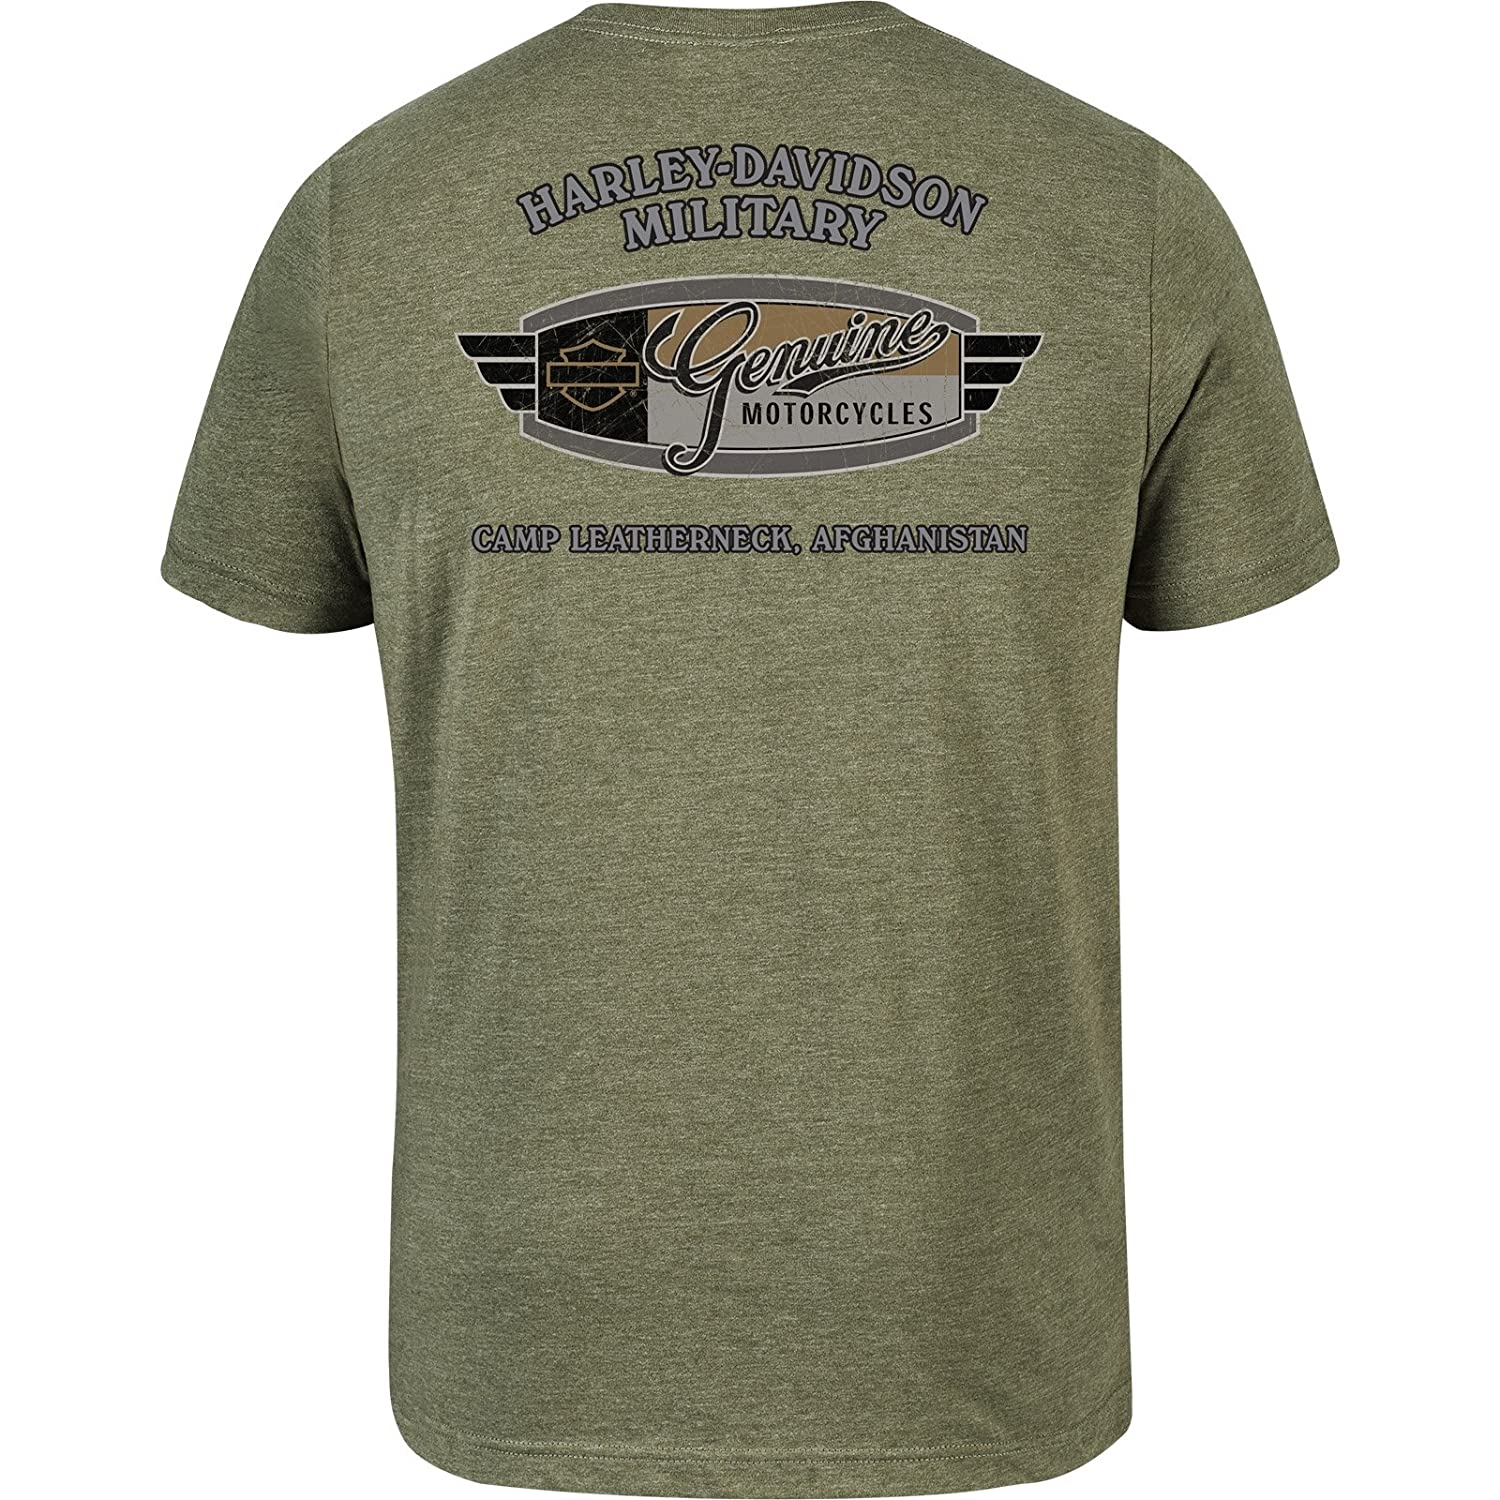 Camp Leatherneck Eagle Decal Mens Lightweight Graphic T-Shirt Harley-Davidson Military